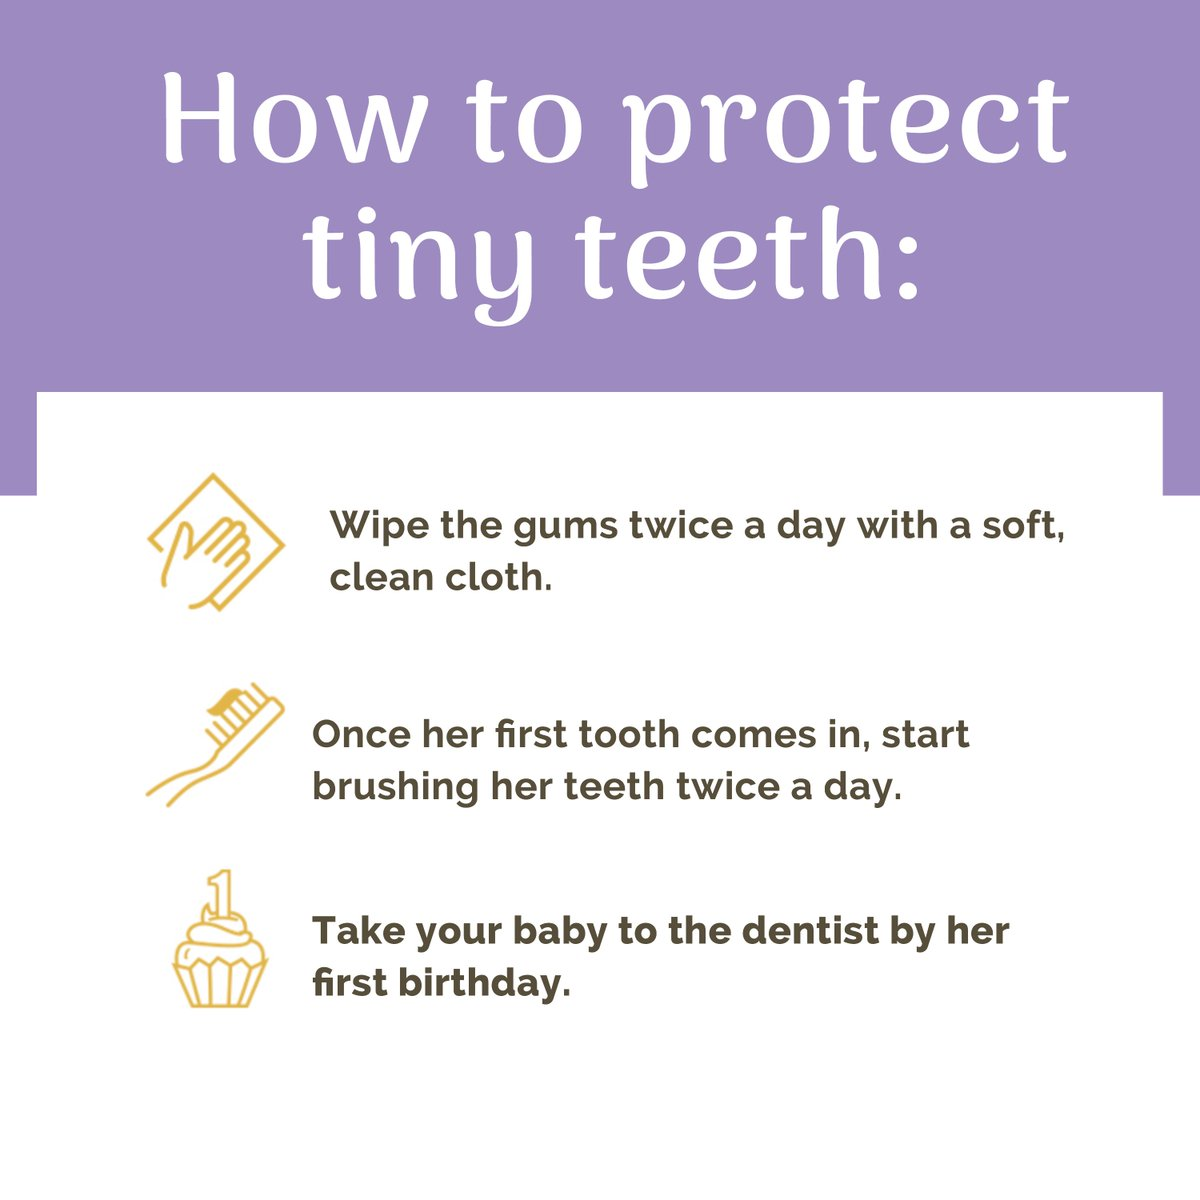 You may not see them yet, but your baby's teeth are hiding right beneath the gums. This February, you can celebrate National Children's Dental Health Month by learning how to care for them from the start. #NCDHM #TinyTeeth